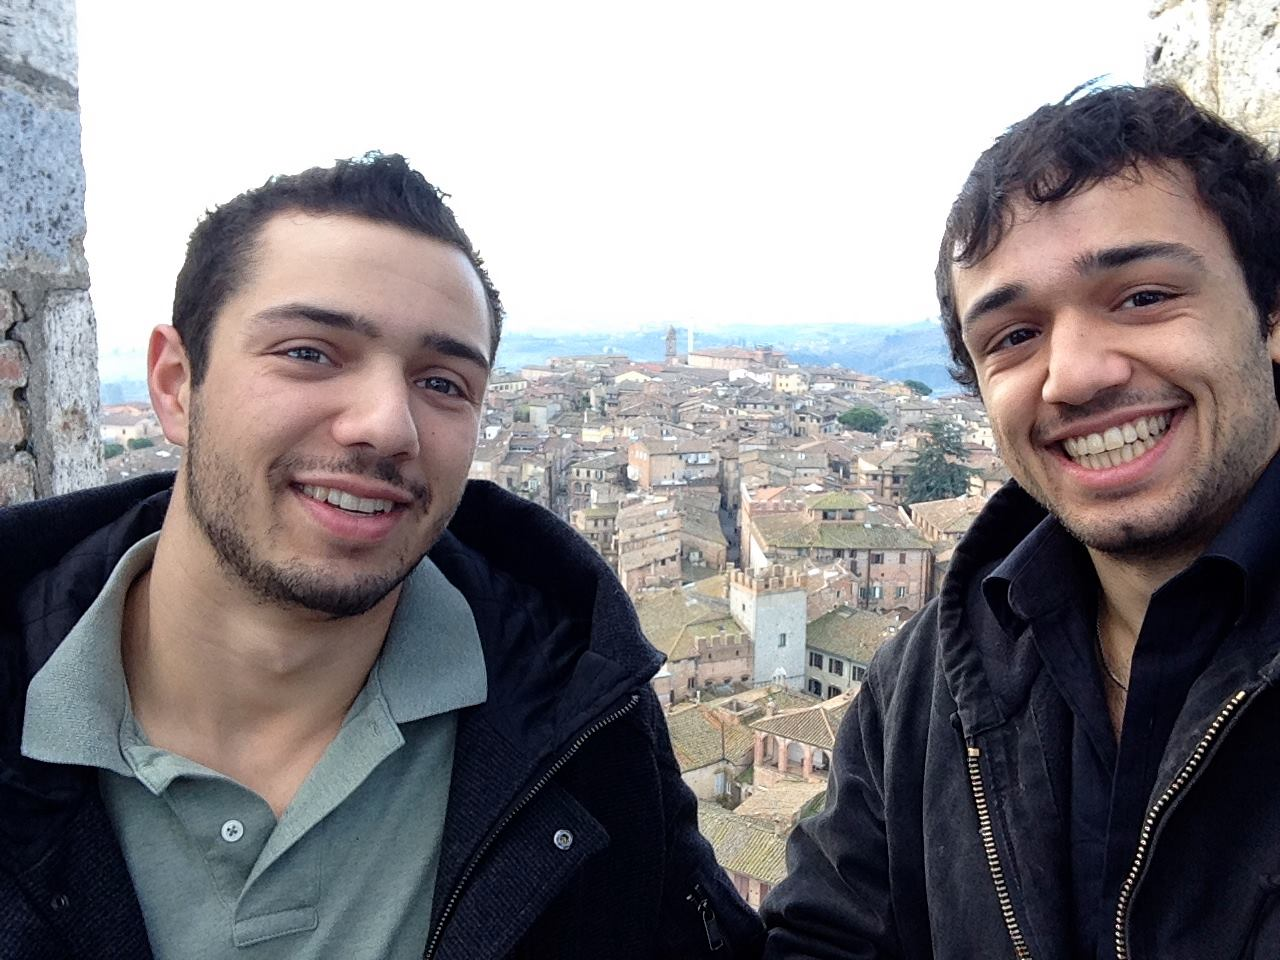 Zach and Jake Teeny selfie in Italy